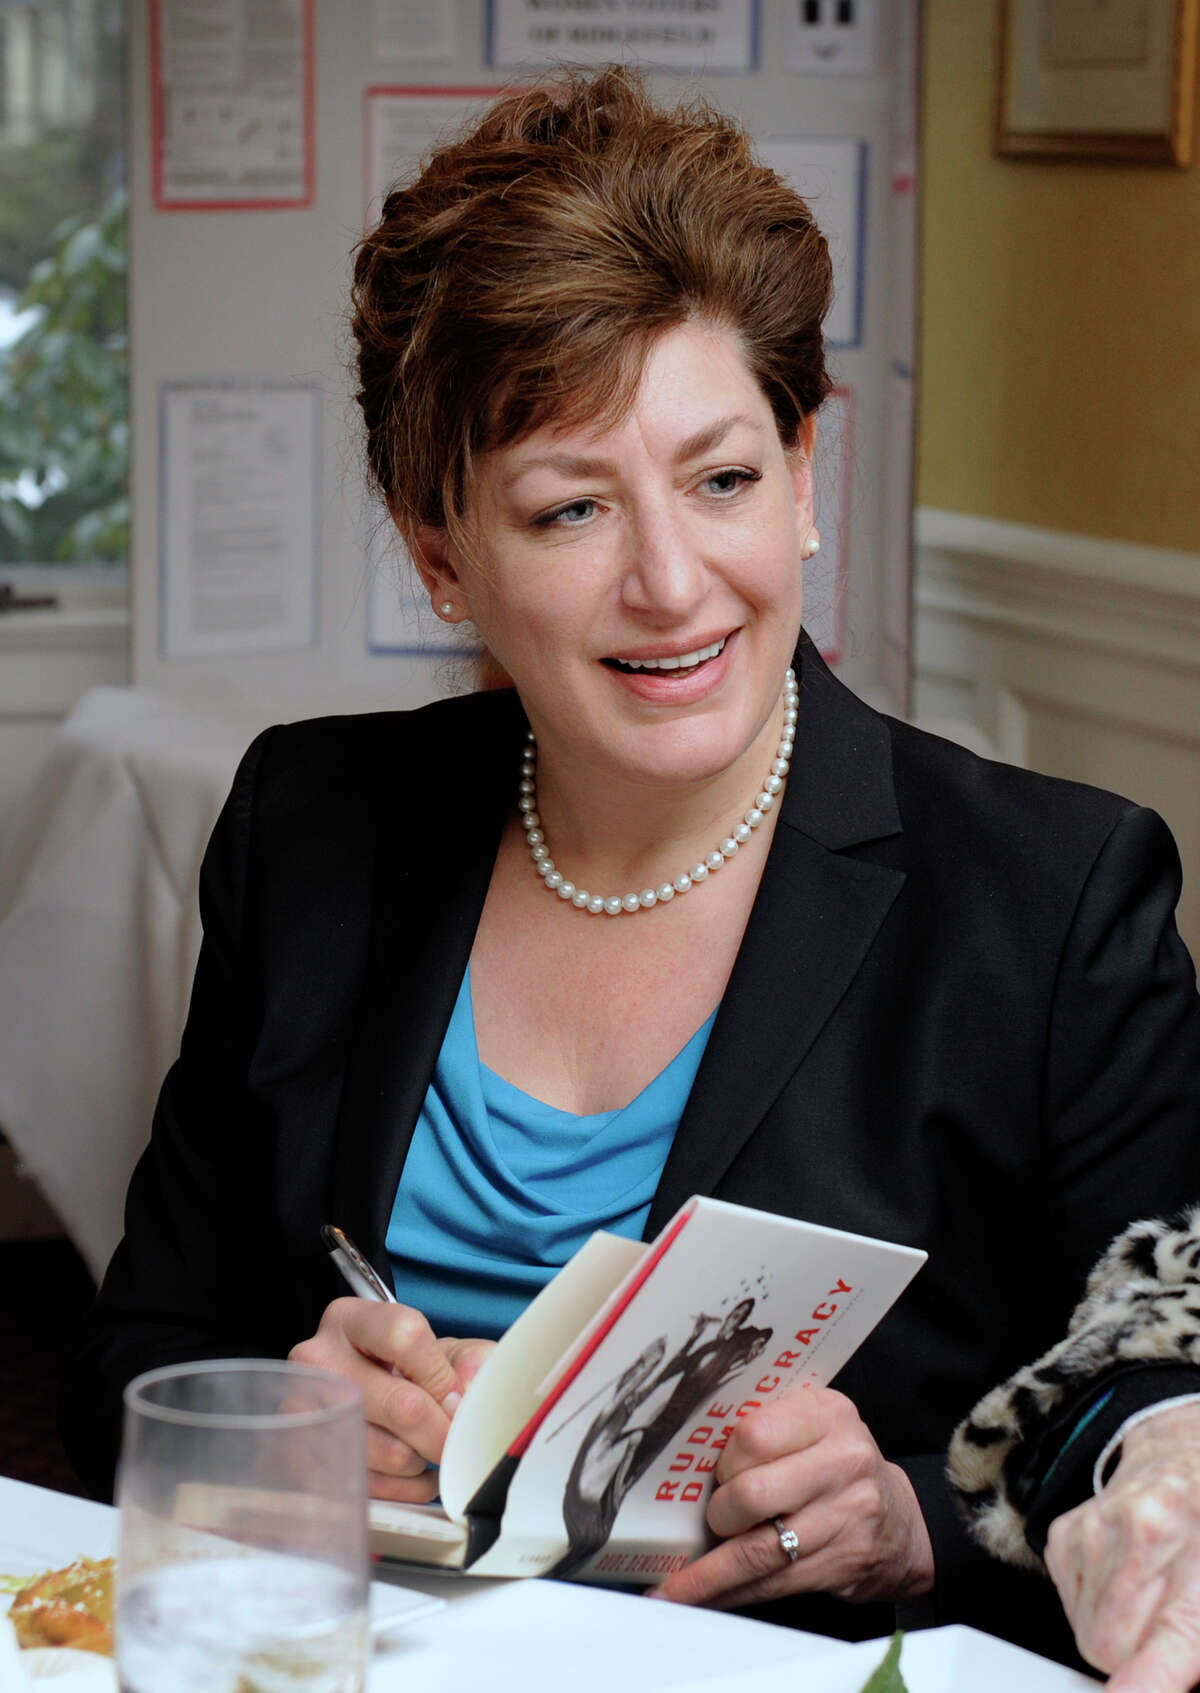 """Susan Herbst, president of the University of Connecticut, speaks to a gathering sponsored by the Ridgefield League of Women Voters, at Sarah's Wine Bar in Ridgefield, Friday, January 11, 2013. After the talk, Herbst signs copies of her book """"Rude Democracy."""""""